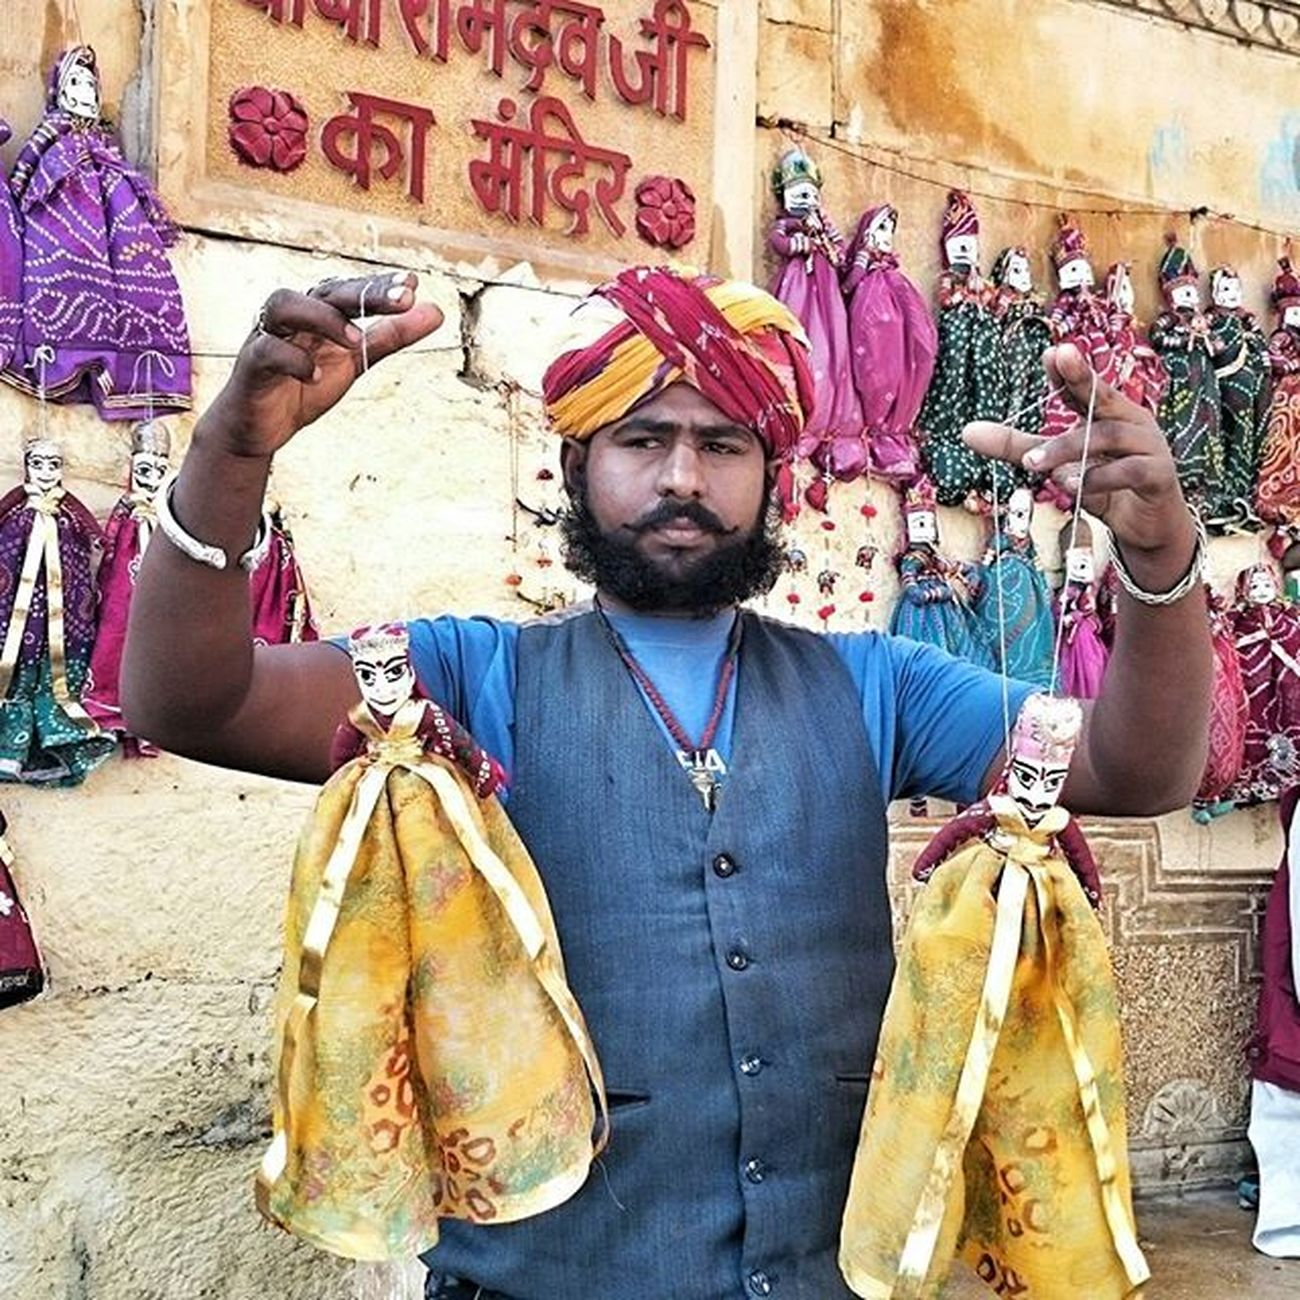 Gudda Guddi Kahani Story Jaiselmer Culture Fort Rajasthan India Travel Diaries Instadaily Instapic Colors Turban Moustache Beard Nofilter Sony Xperiaz2